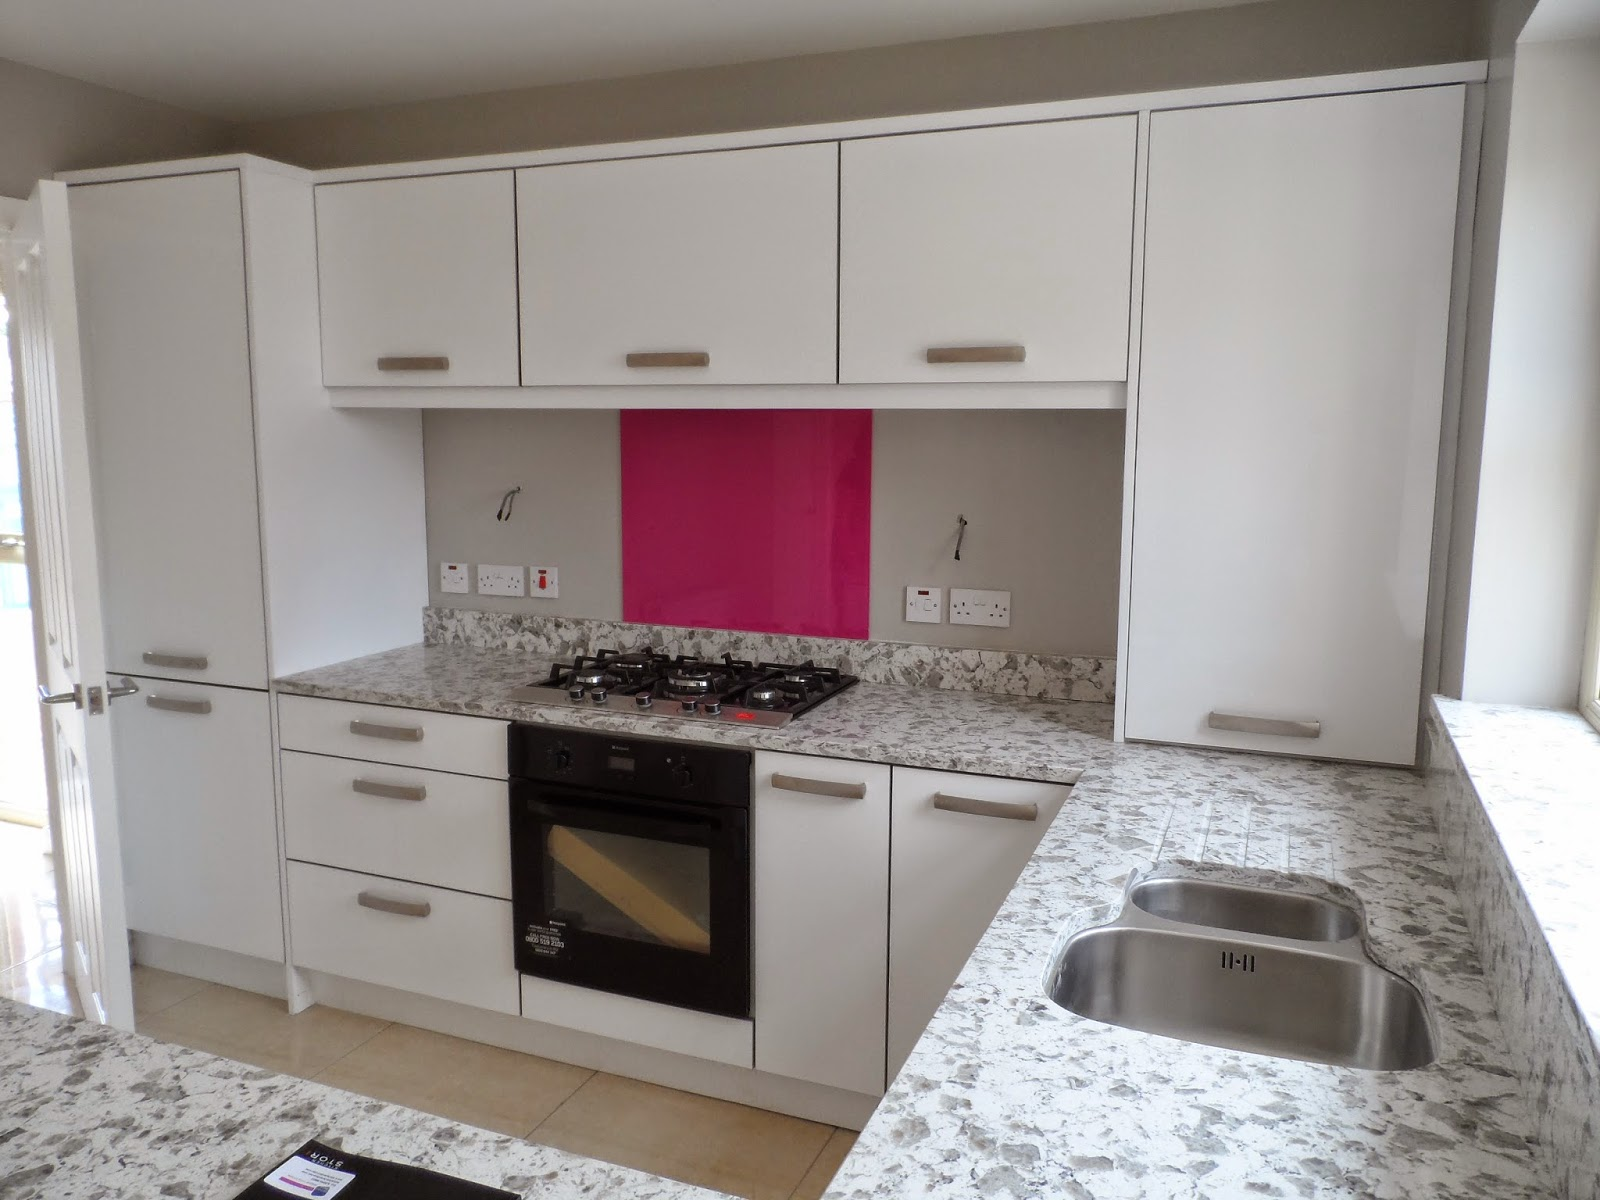 Kitchens and bathrooms direct - For Full Details Of Our Kitchens Bedrooms And Bathrooms Go To Www Kitchensdirectni Com Or Contact Us At Info Kitchensdirectni Com For Your Free